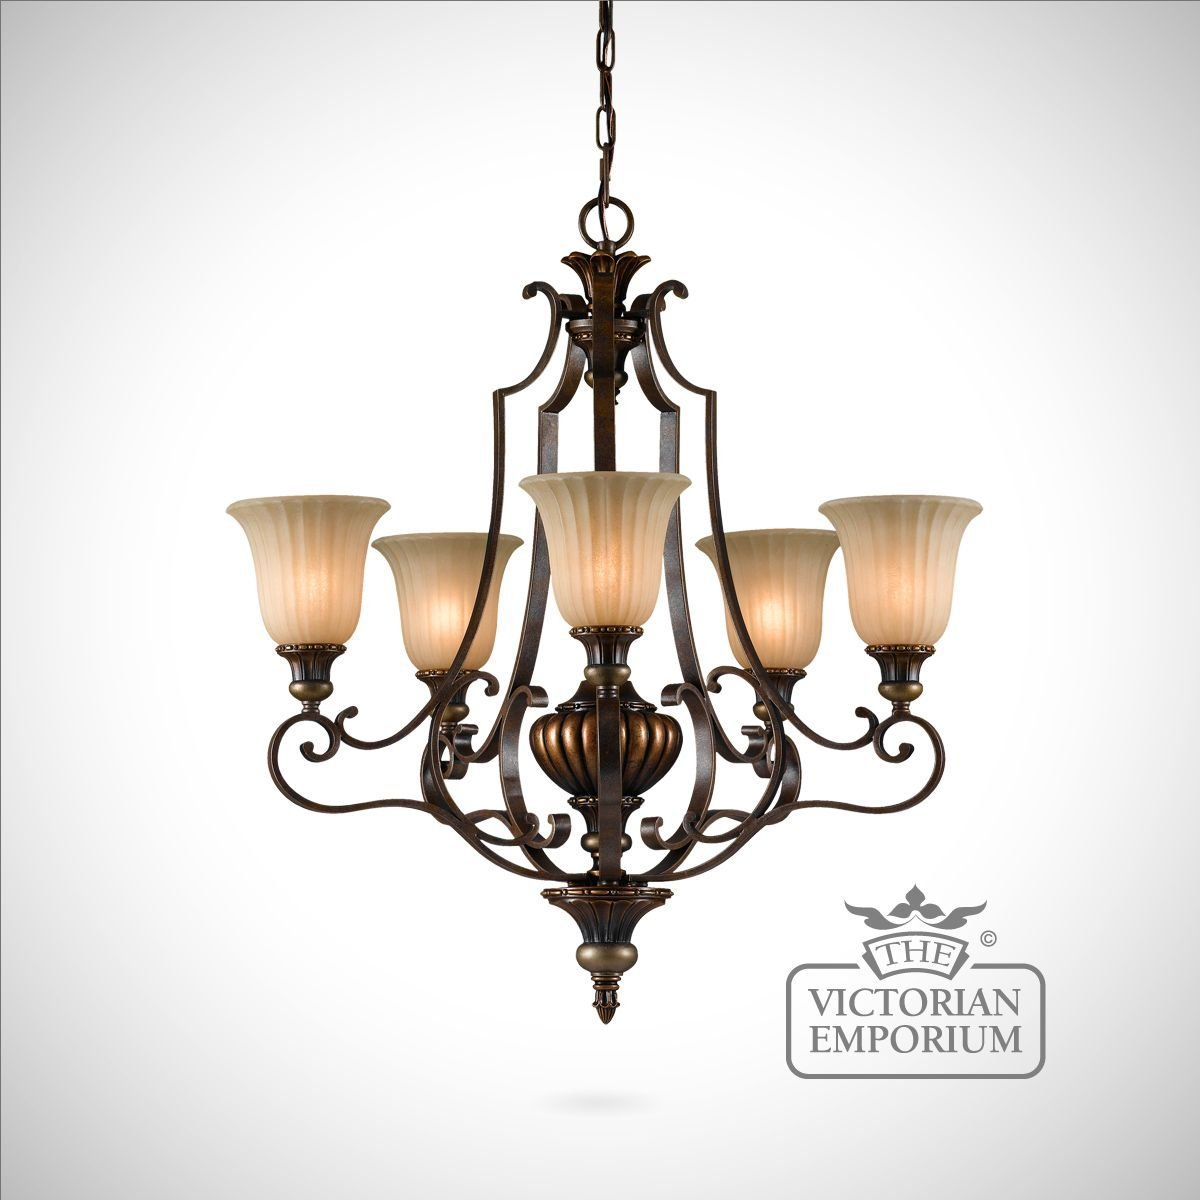 Gold and bronze decorative 5 light chandelier ceiling chandeliers - Lights and chandeliers ...